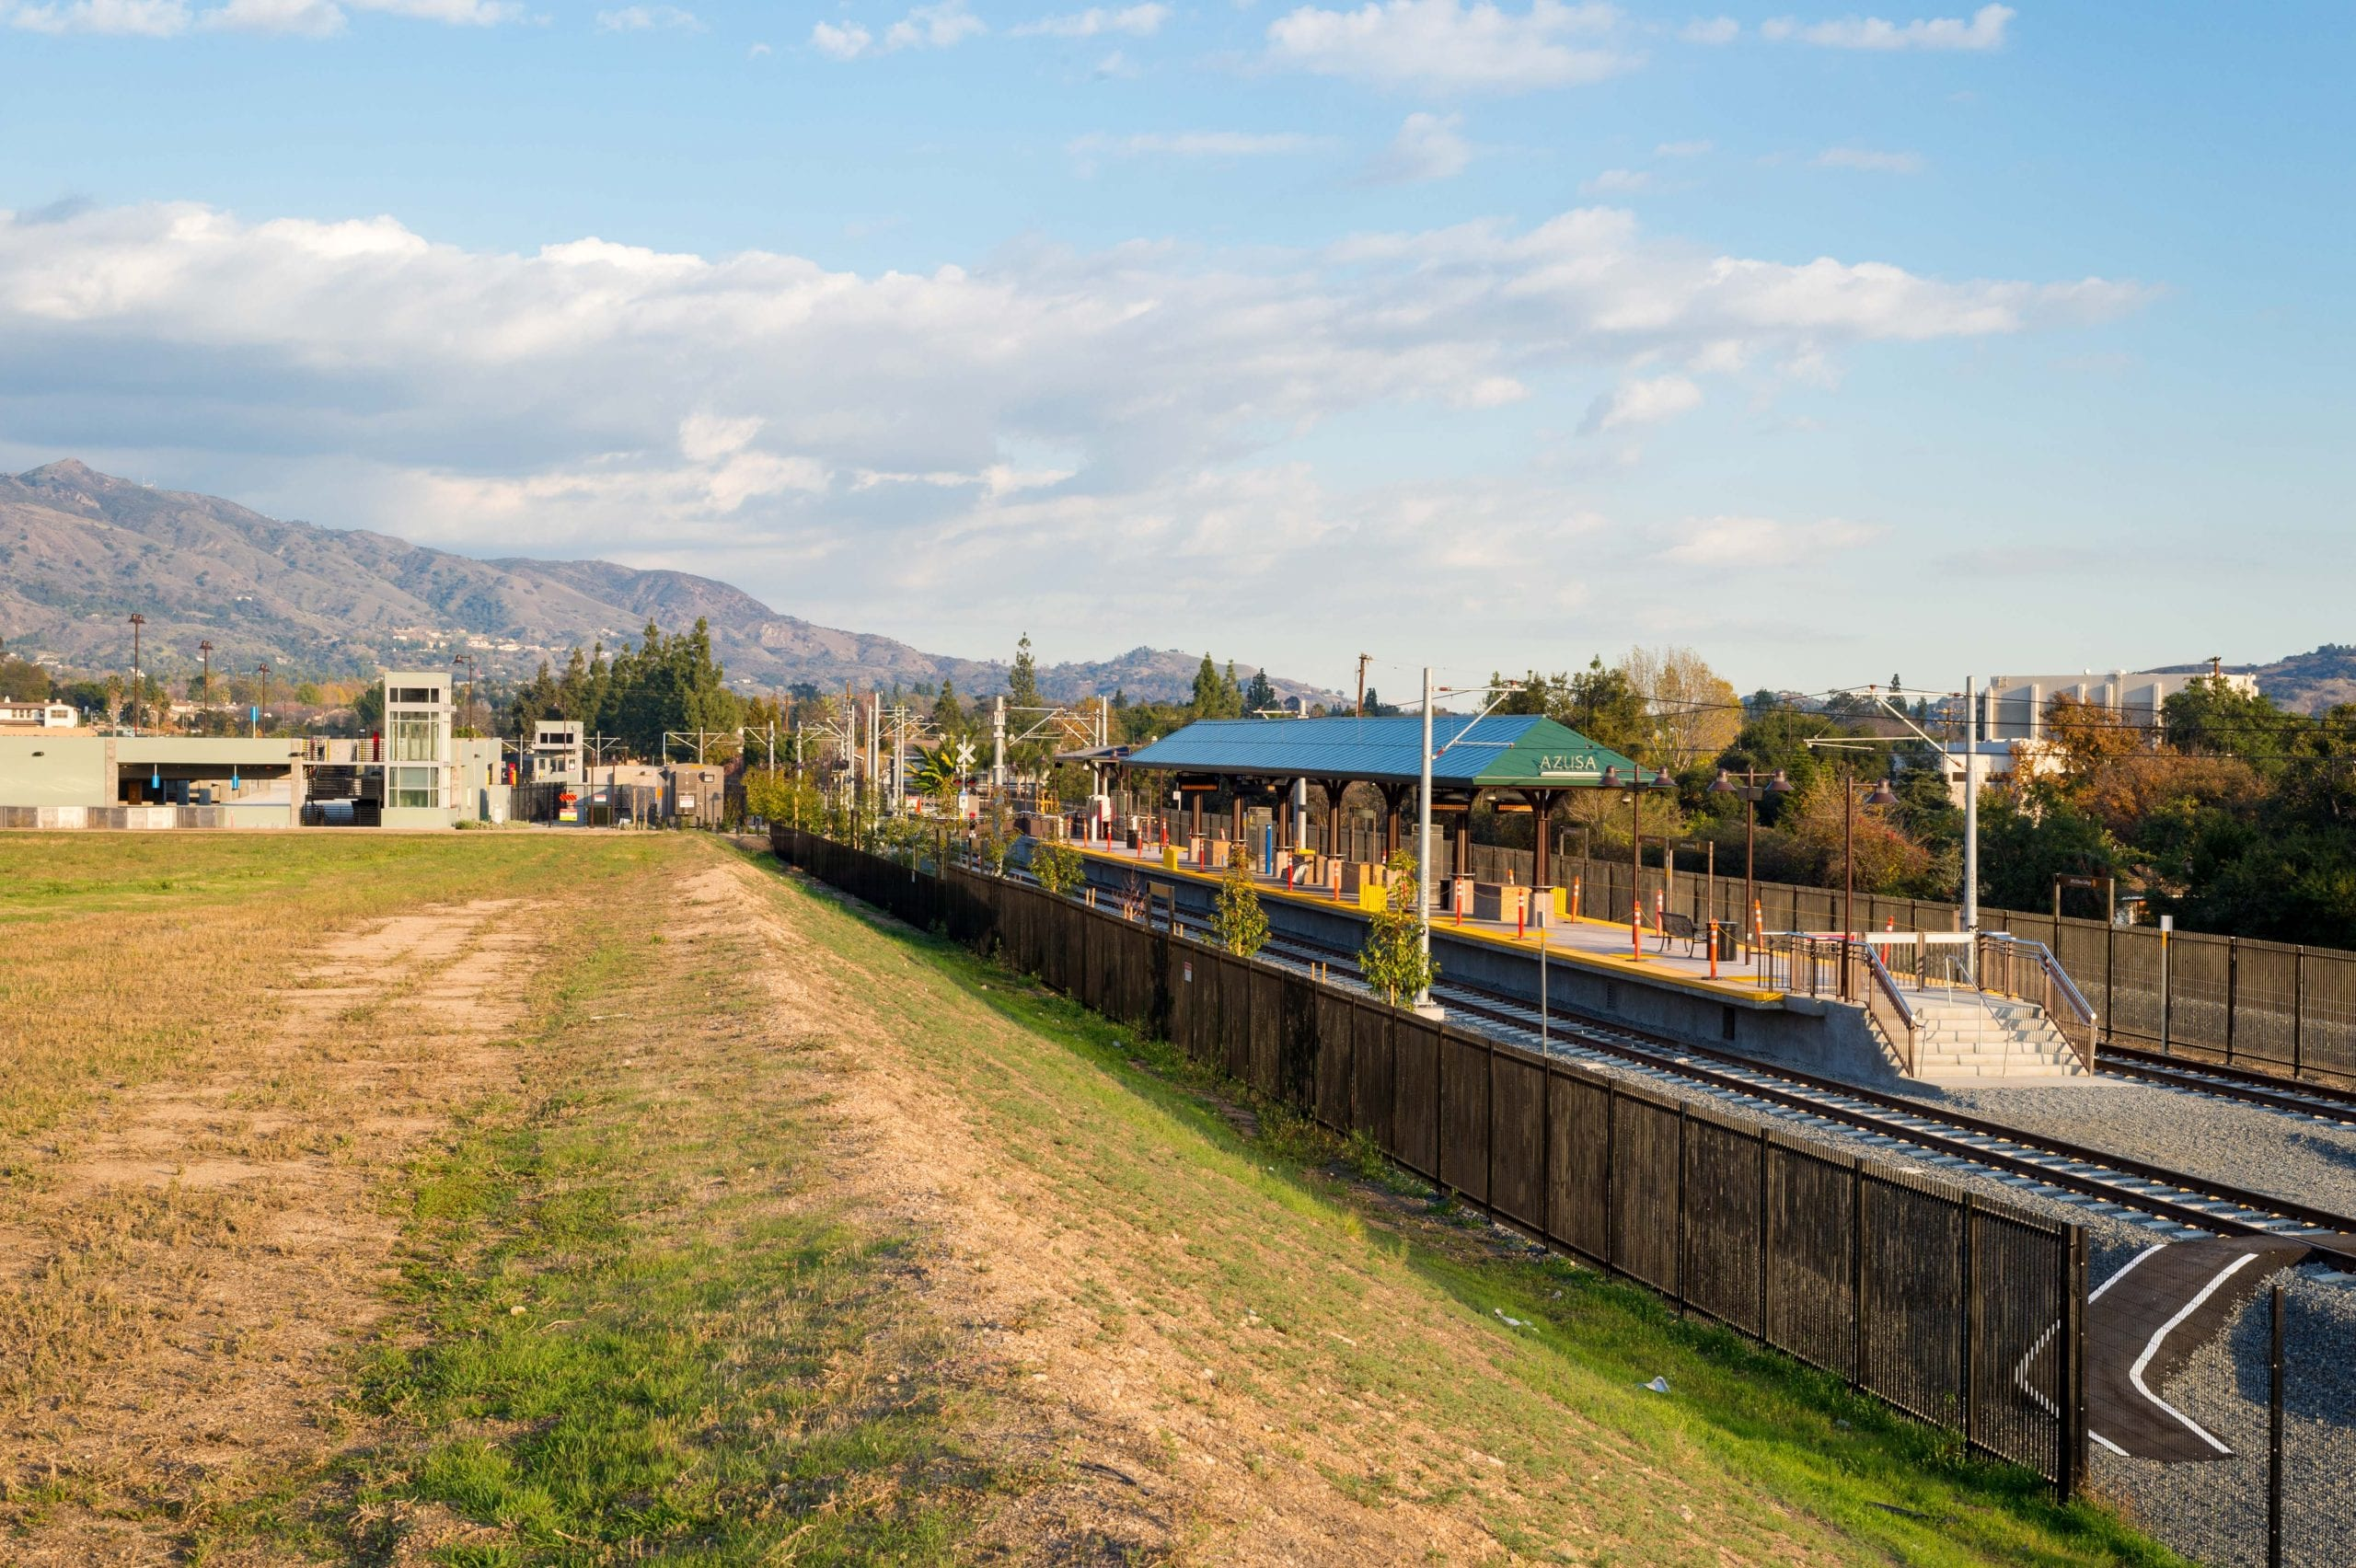 The Gold Line station adjacent to Azusa Pacific University, Citrus College and the Rosedale development. Citrus Avenue will run under the tracks, connecting East Promenade to Foothill Boulevard.